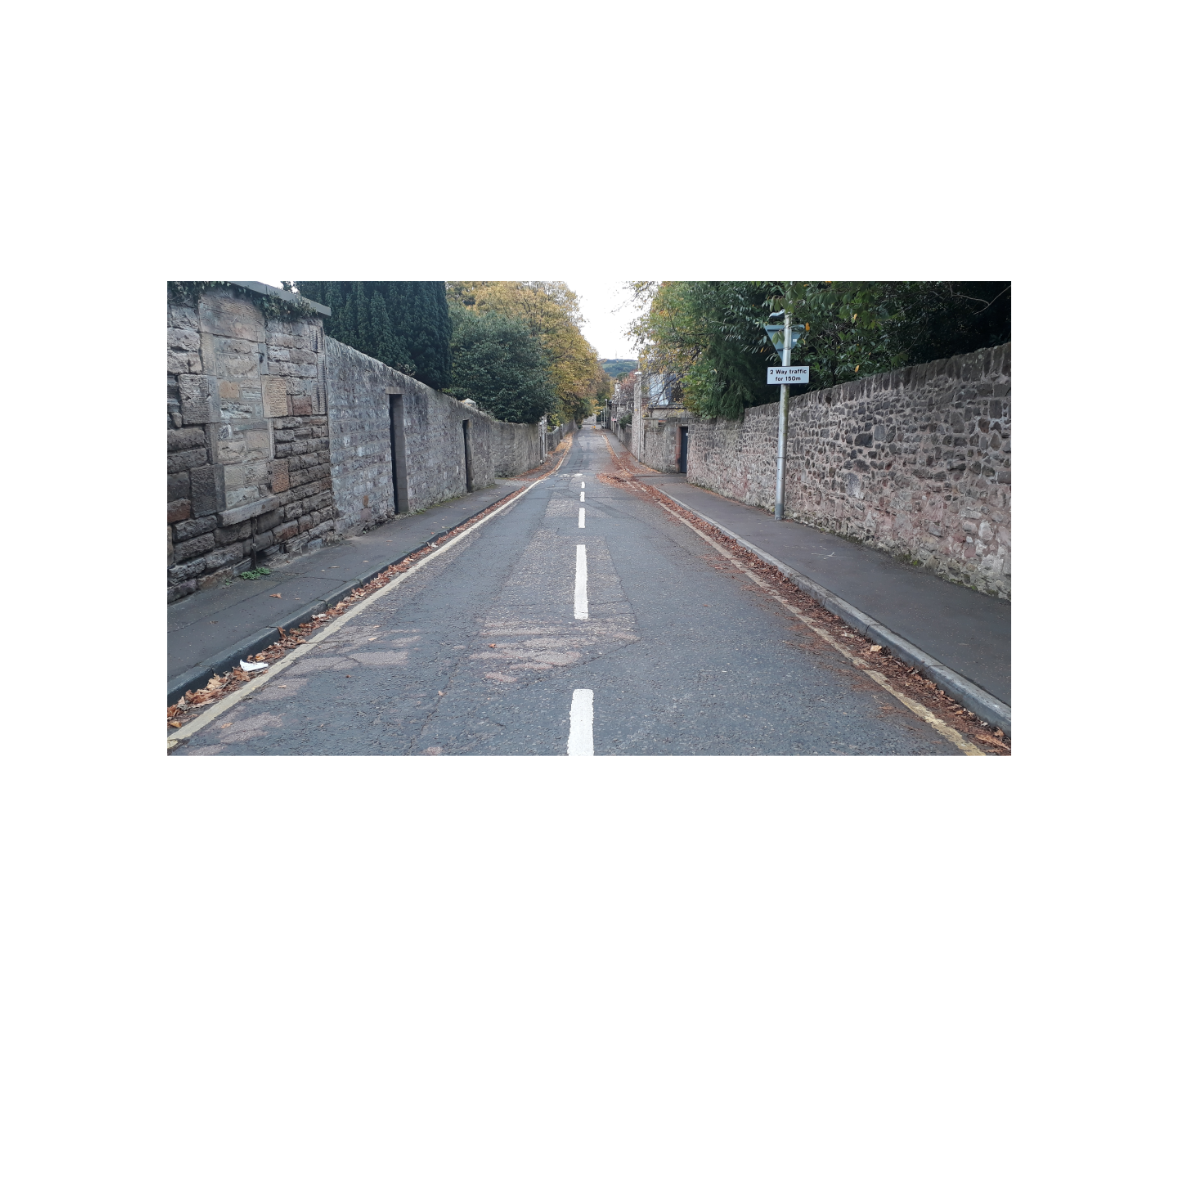 Request a Traffic & Road Safety Consultation